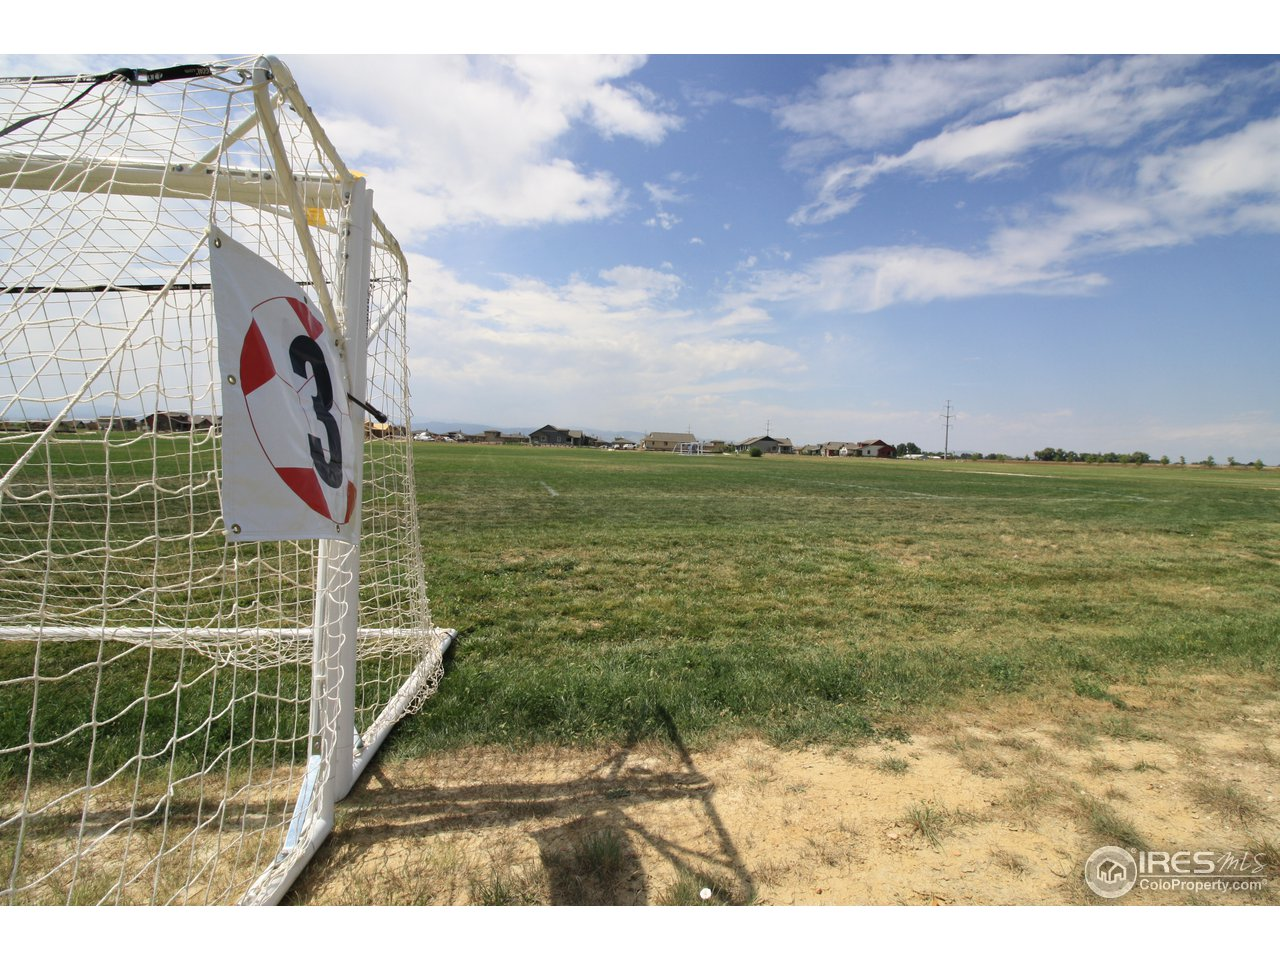 Soccer fields adacent to Wildwing property